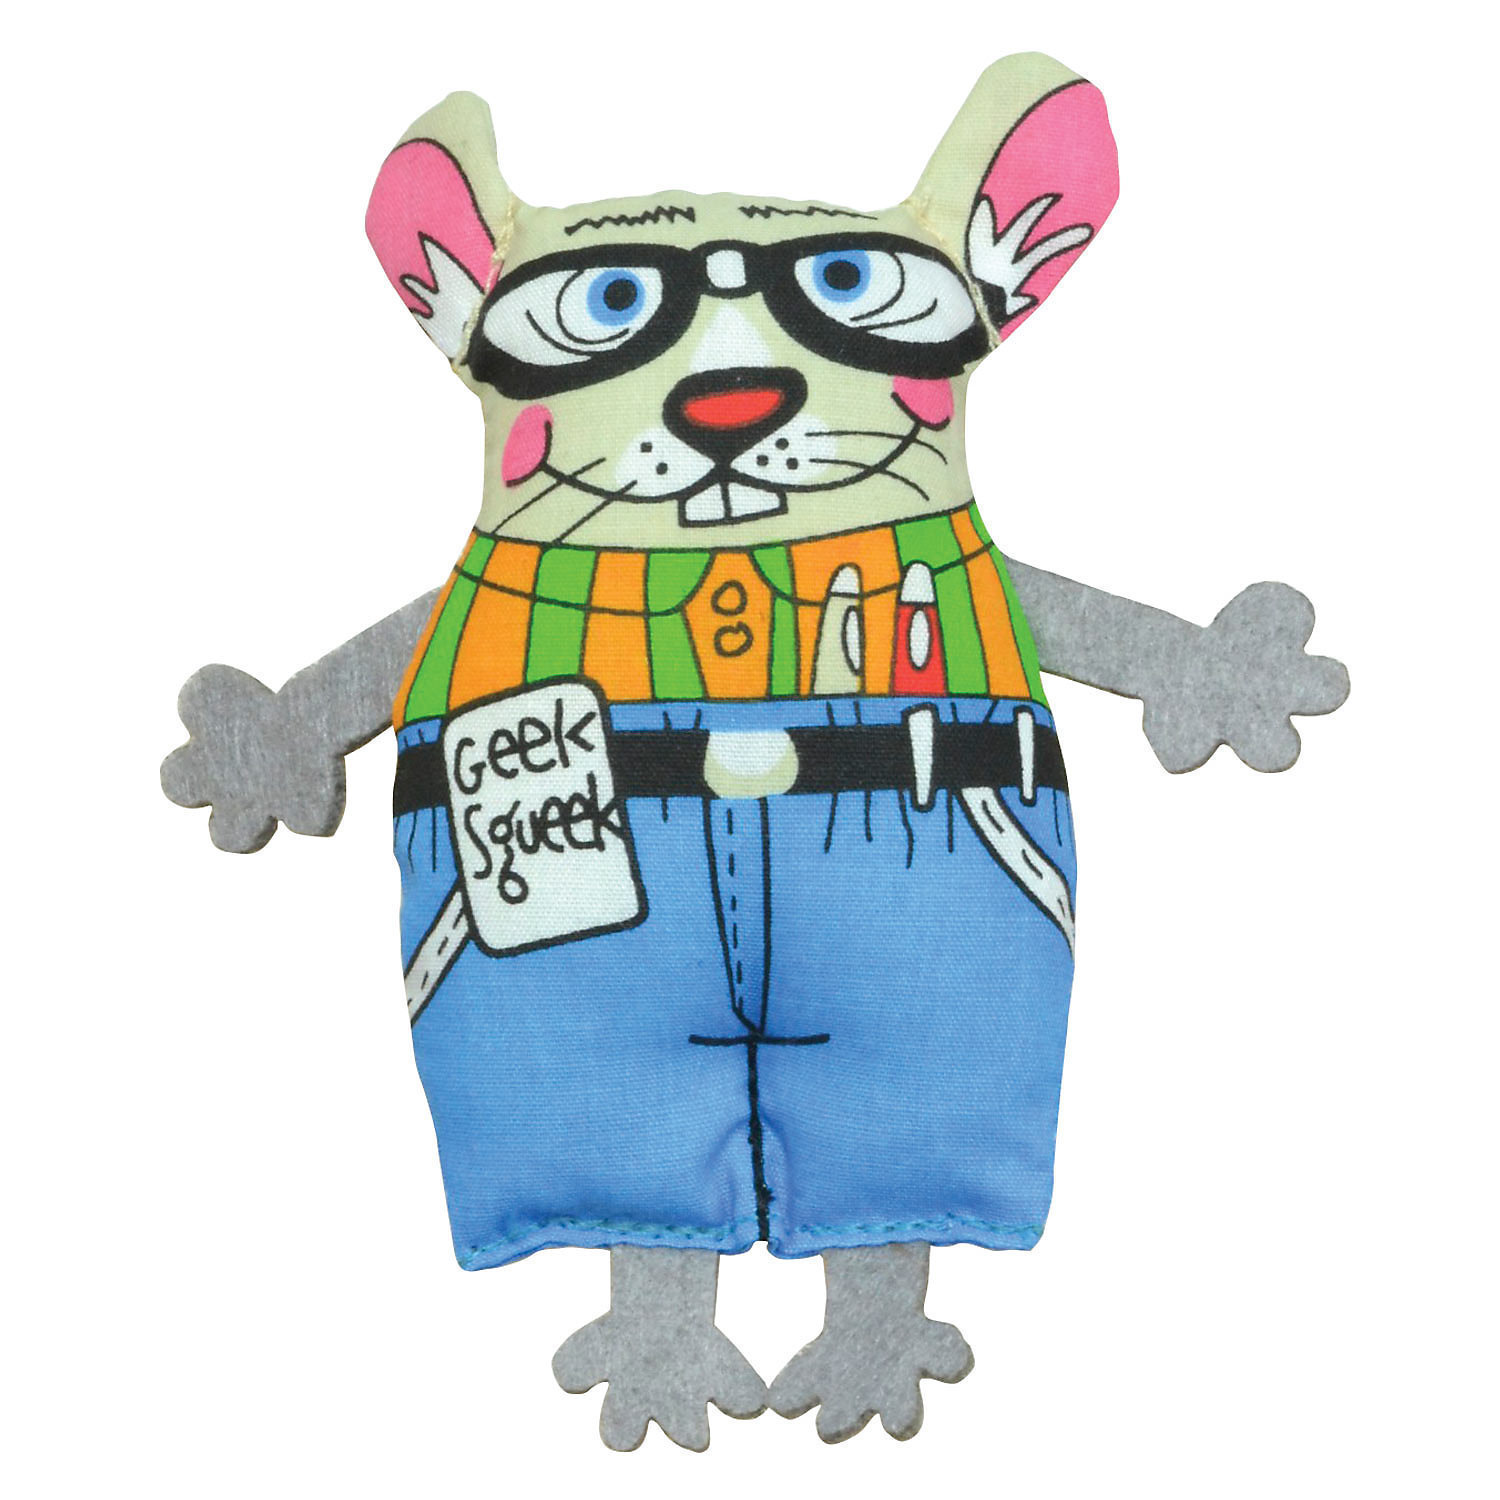 "Petstages Geeky Squeek Mouse Cat Toy, 6.5"" L X 3.5"" W X 0.5"" H  (B.A12)"